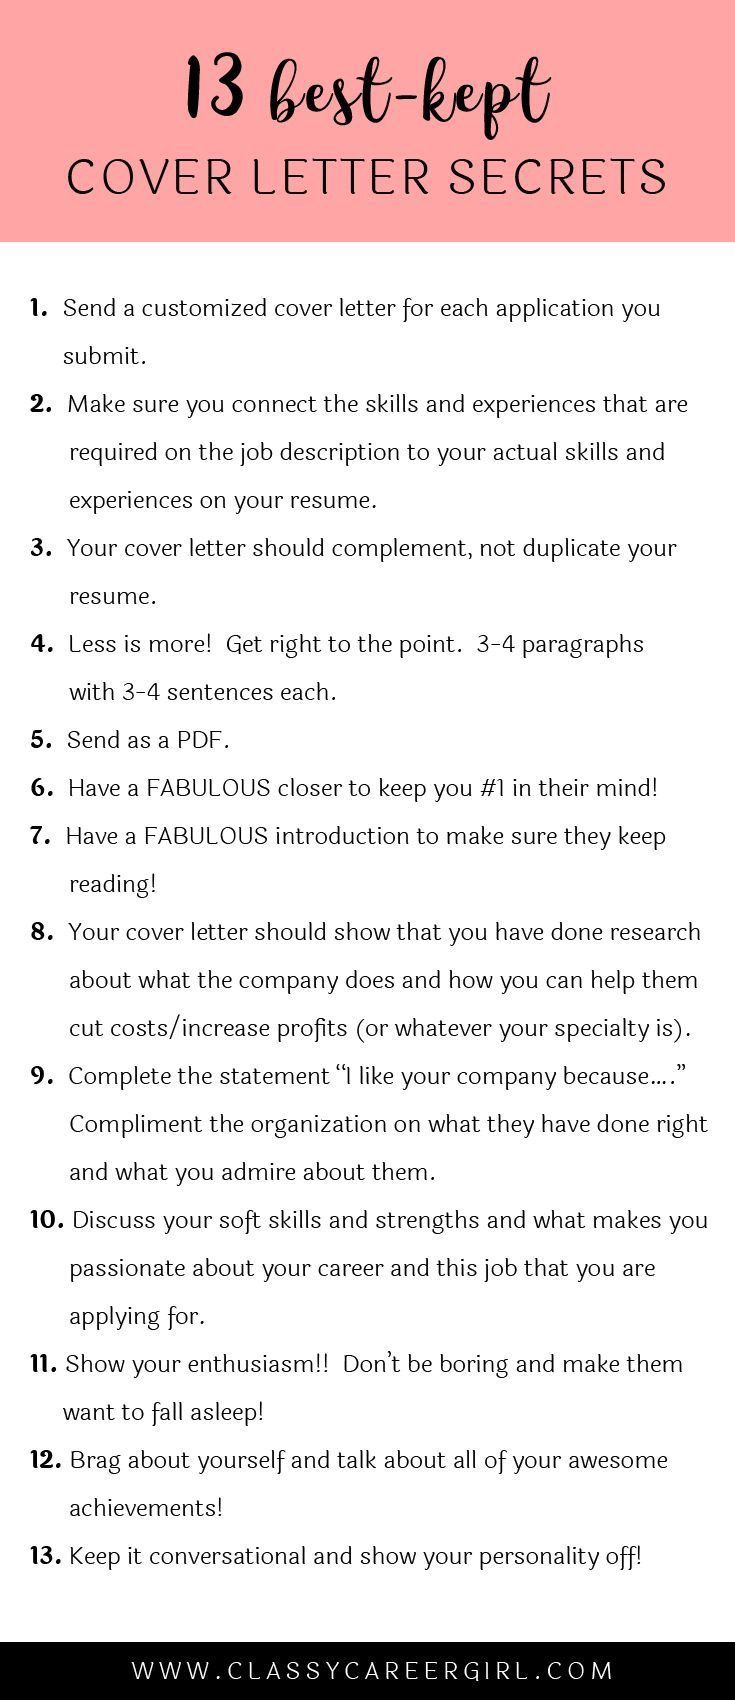 Tips For Cover Letters Cover Letter Secrets  Resume  Pinterest  Adulting Job